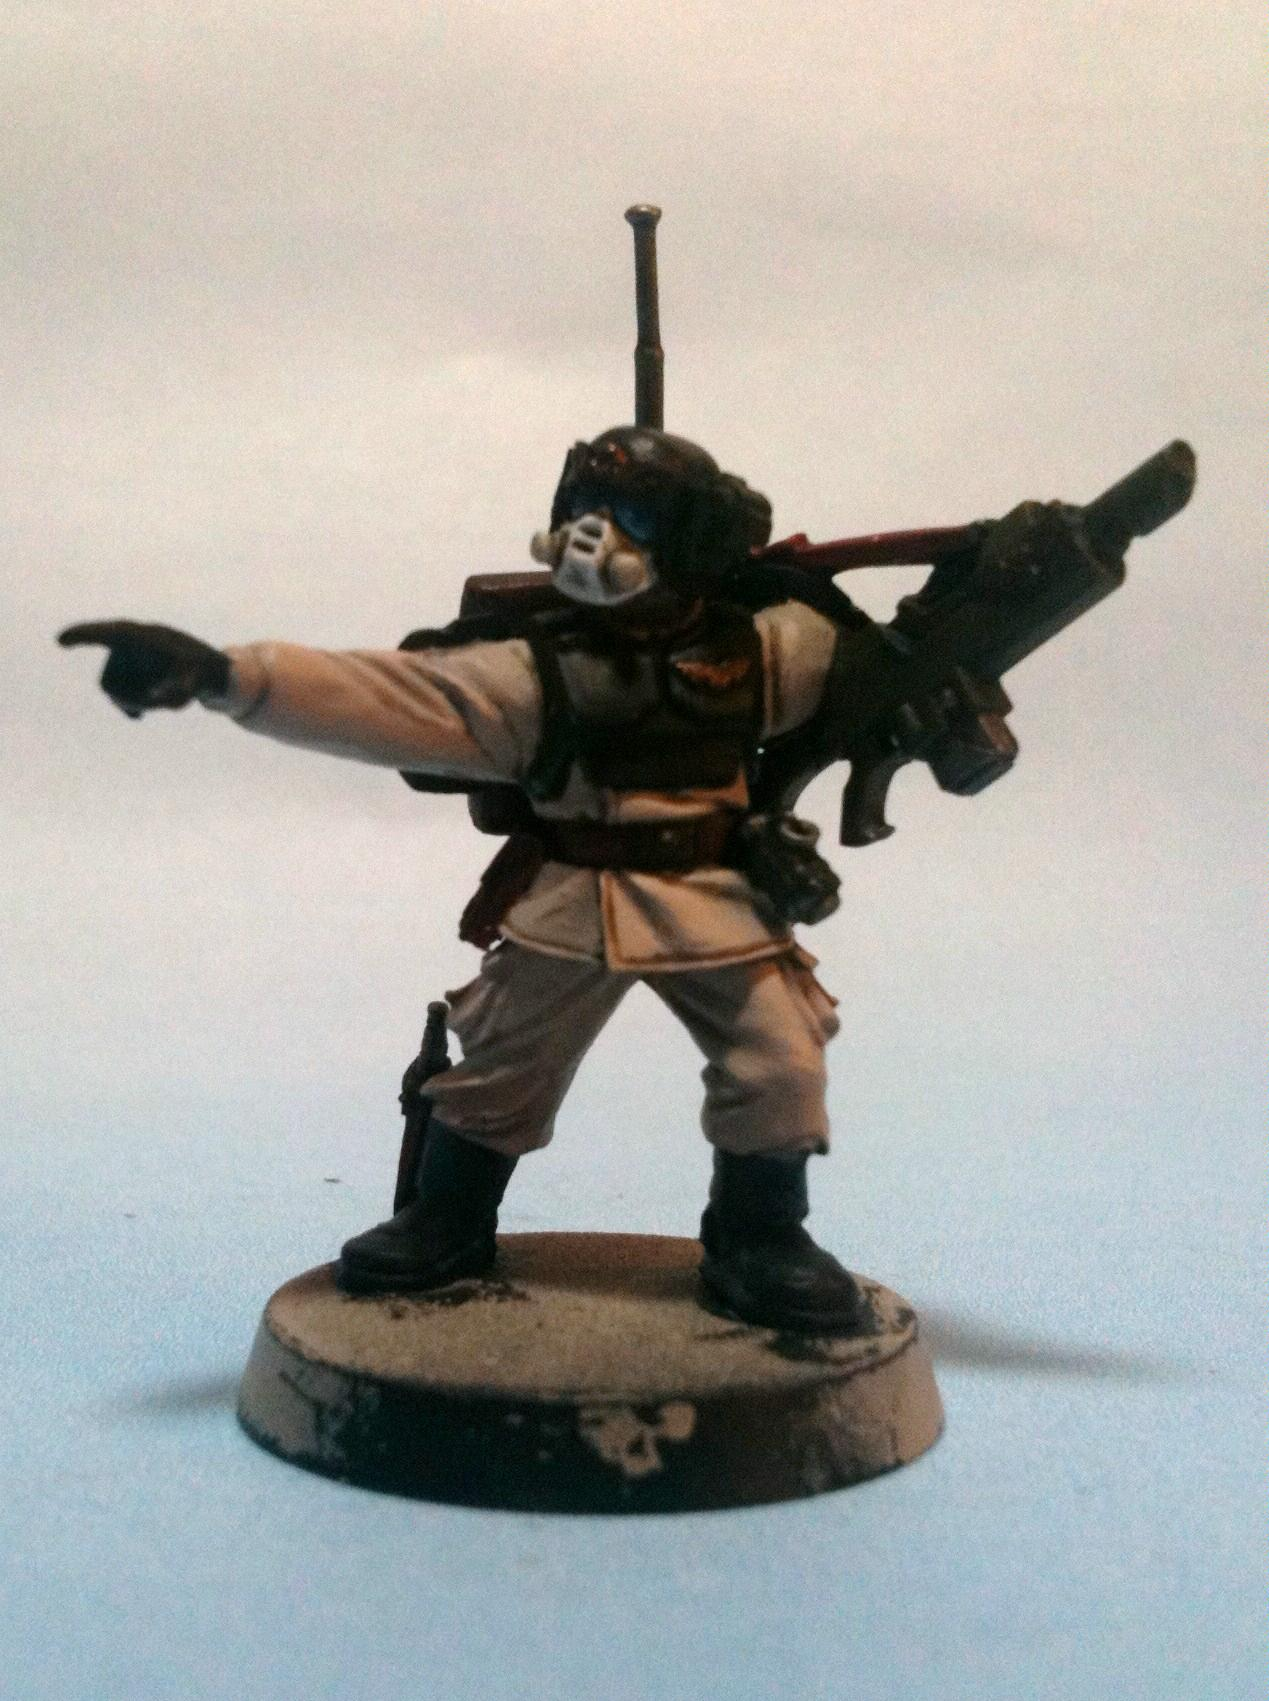 Imperial, Imperial Guard, Soldier, Warhammer 40,000